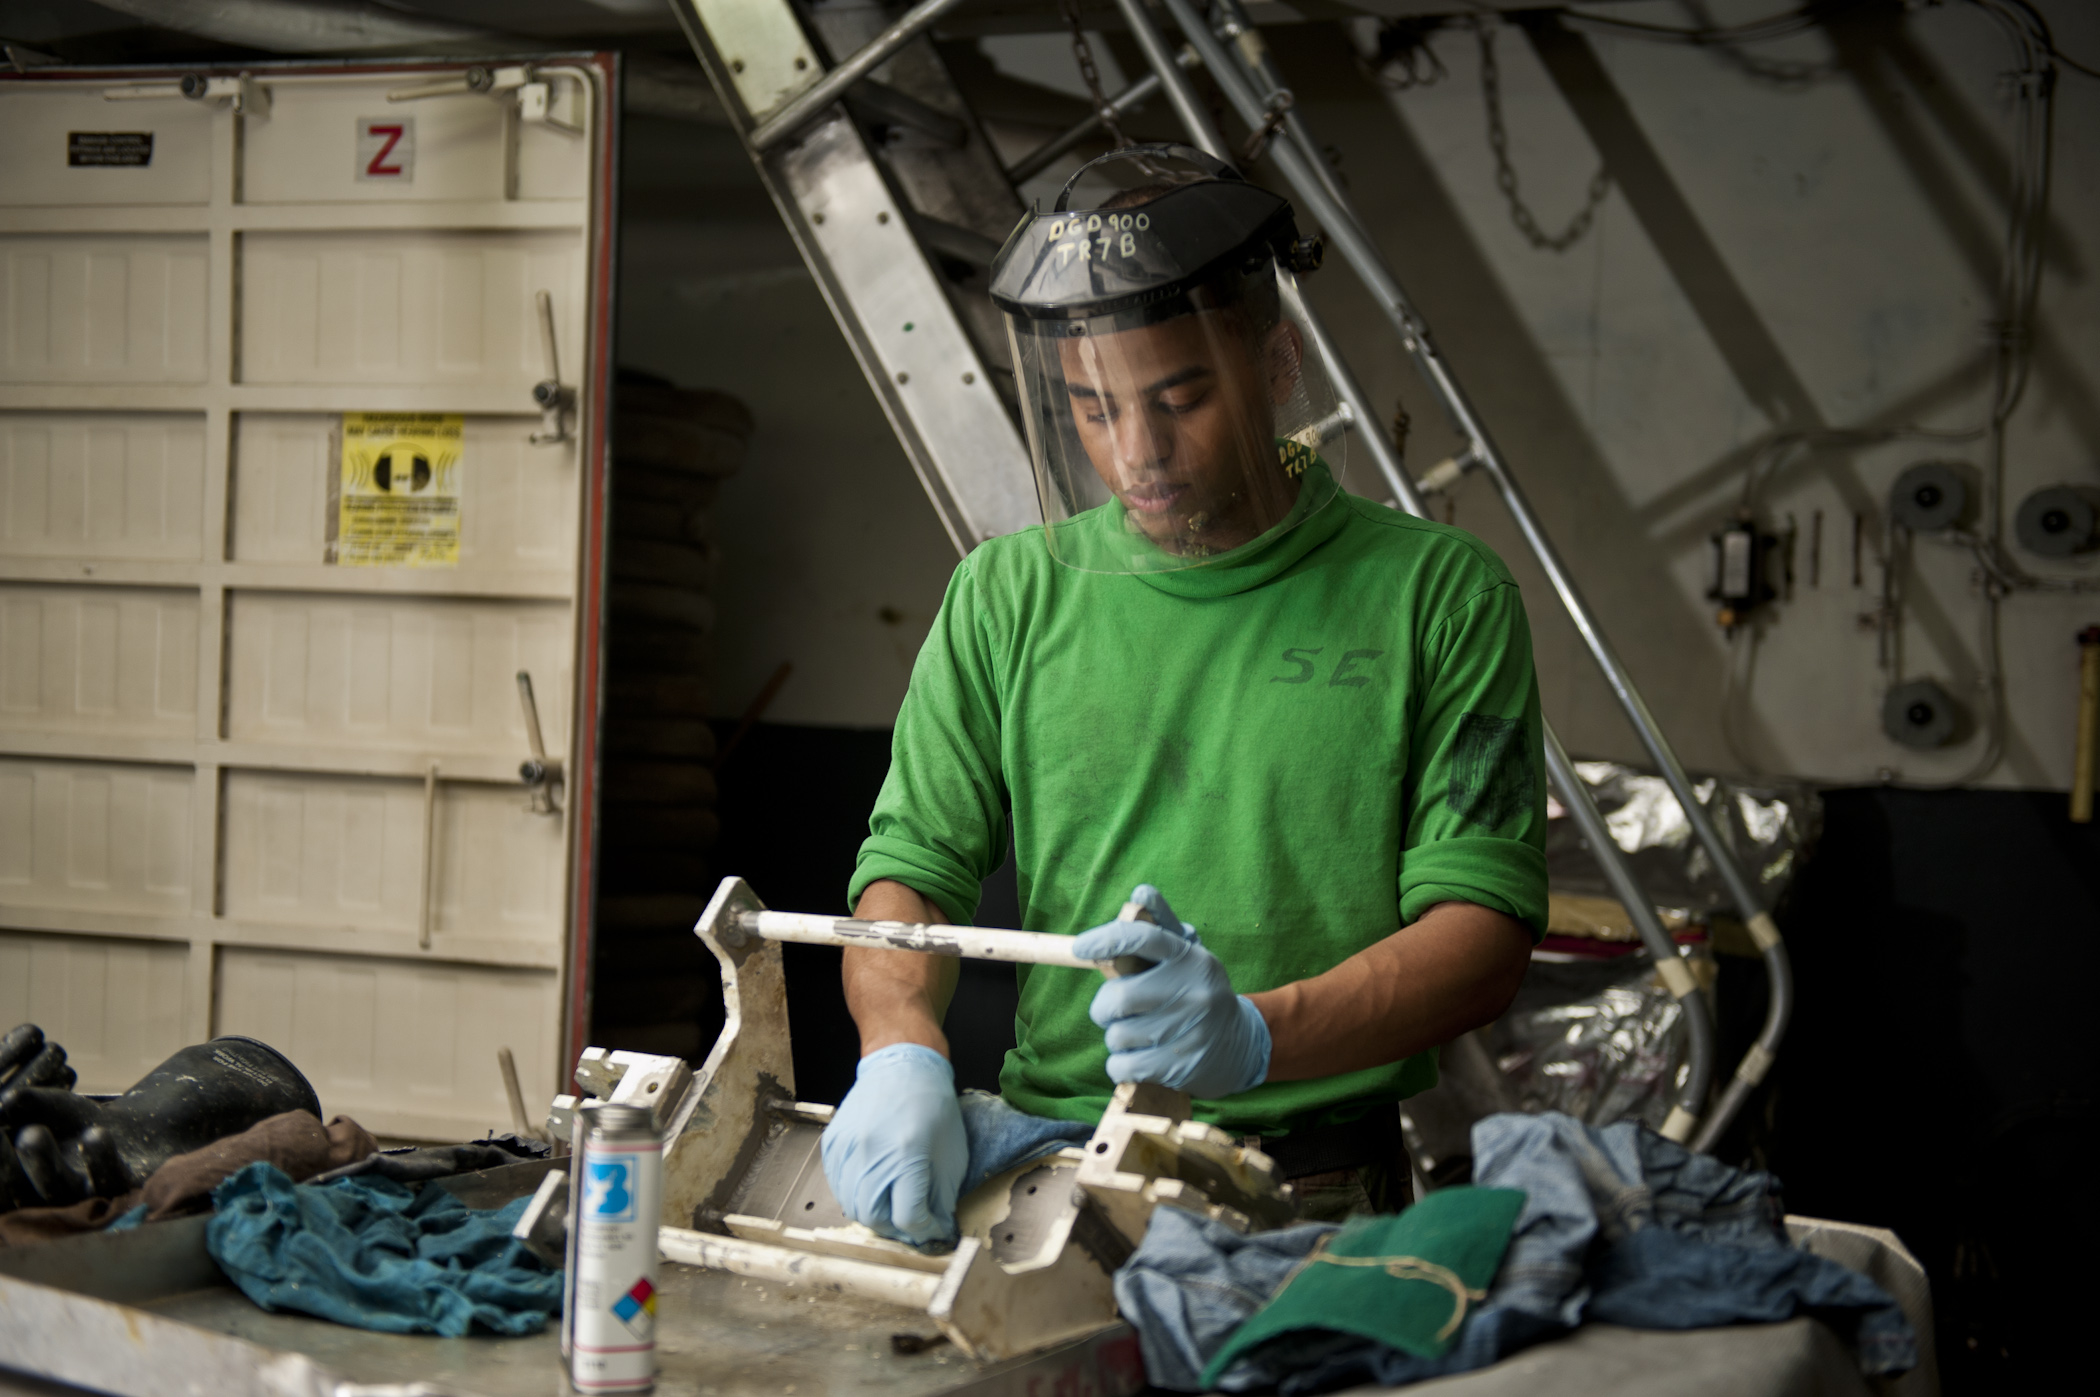 File:us navy 120112-n-bt887-271 aviation support equipment technician